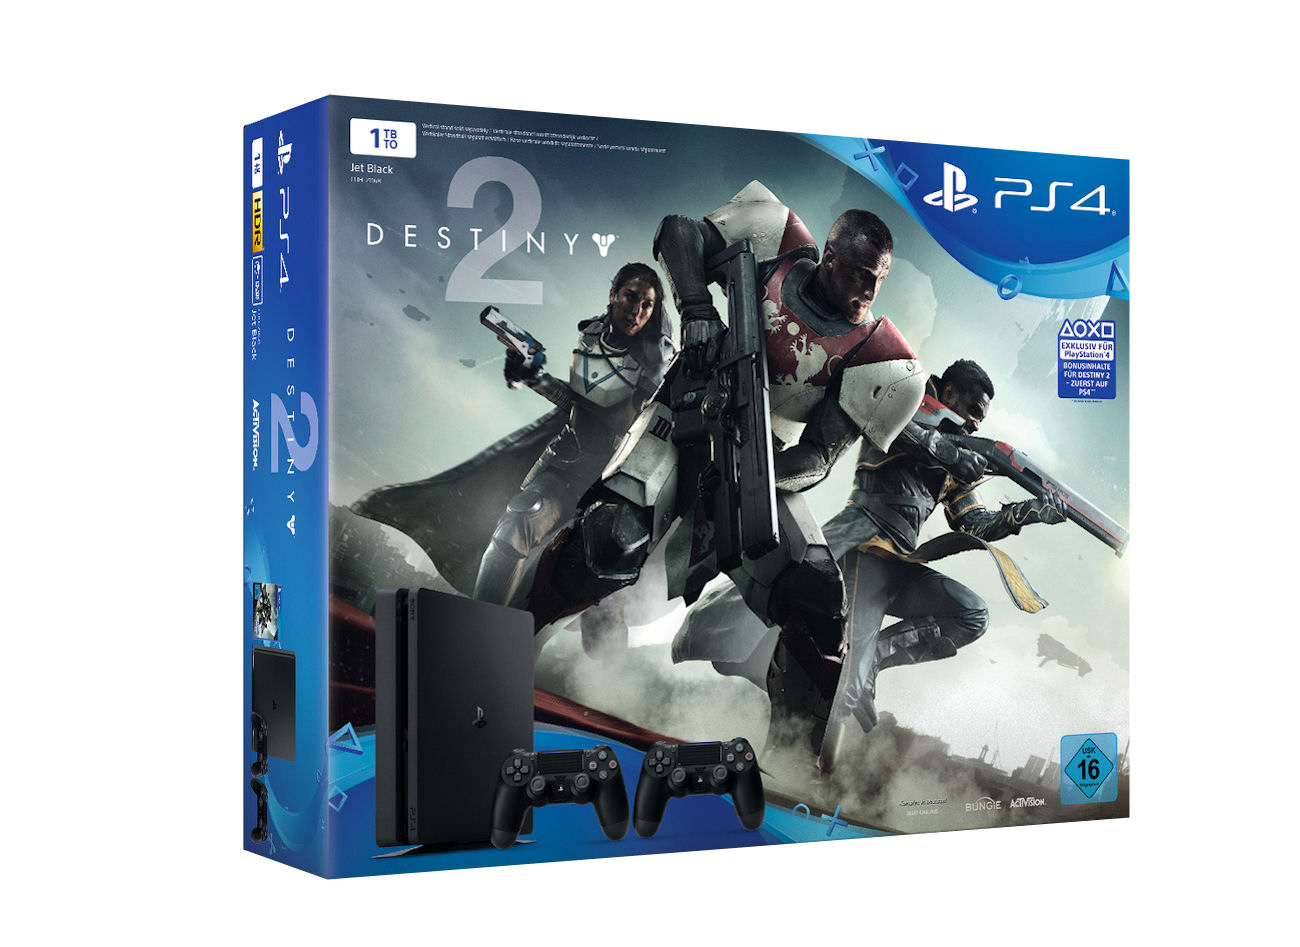 Destiny 2 PS4 Bundle